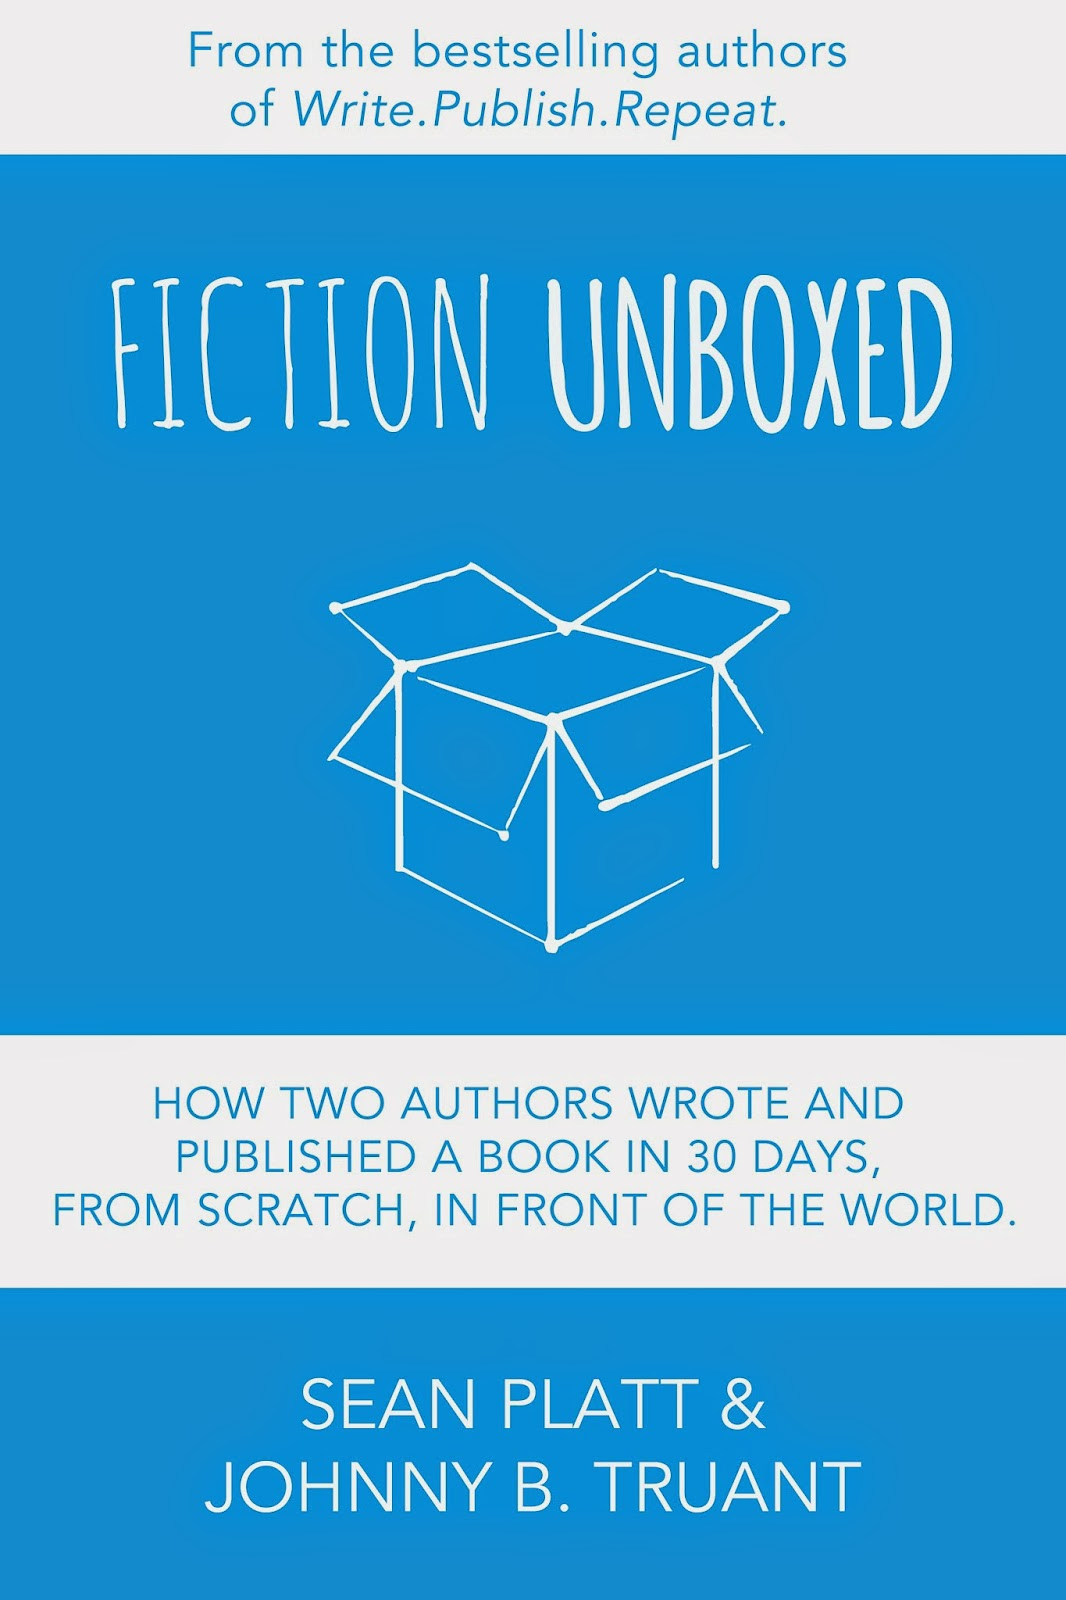 Fiction Unboxed – Sean Platt & Johnny B. Truant